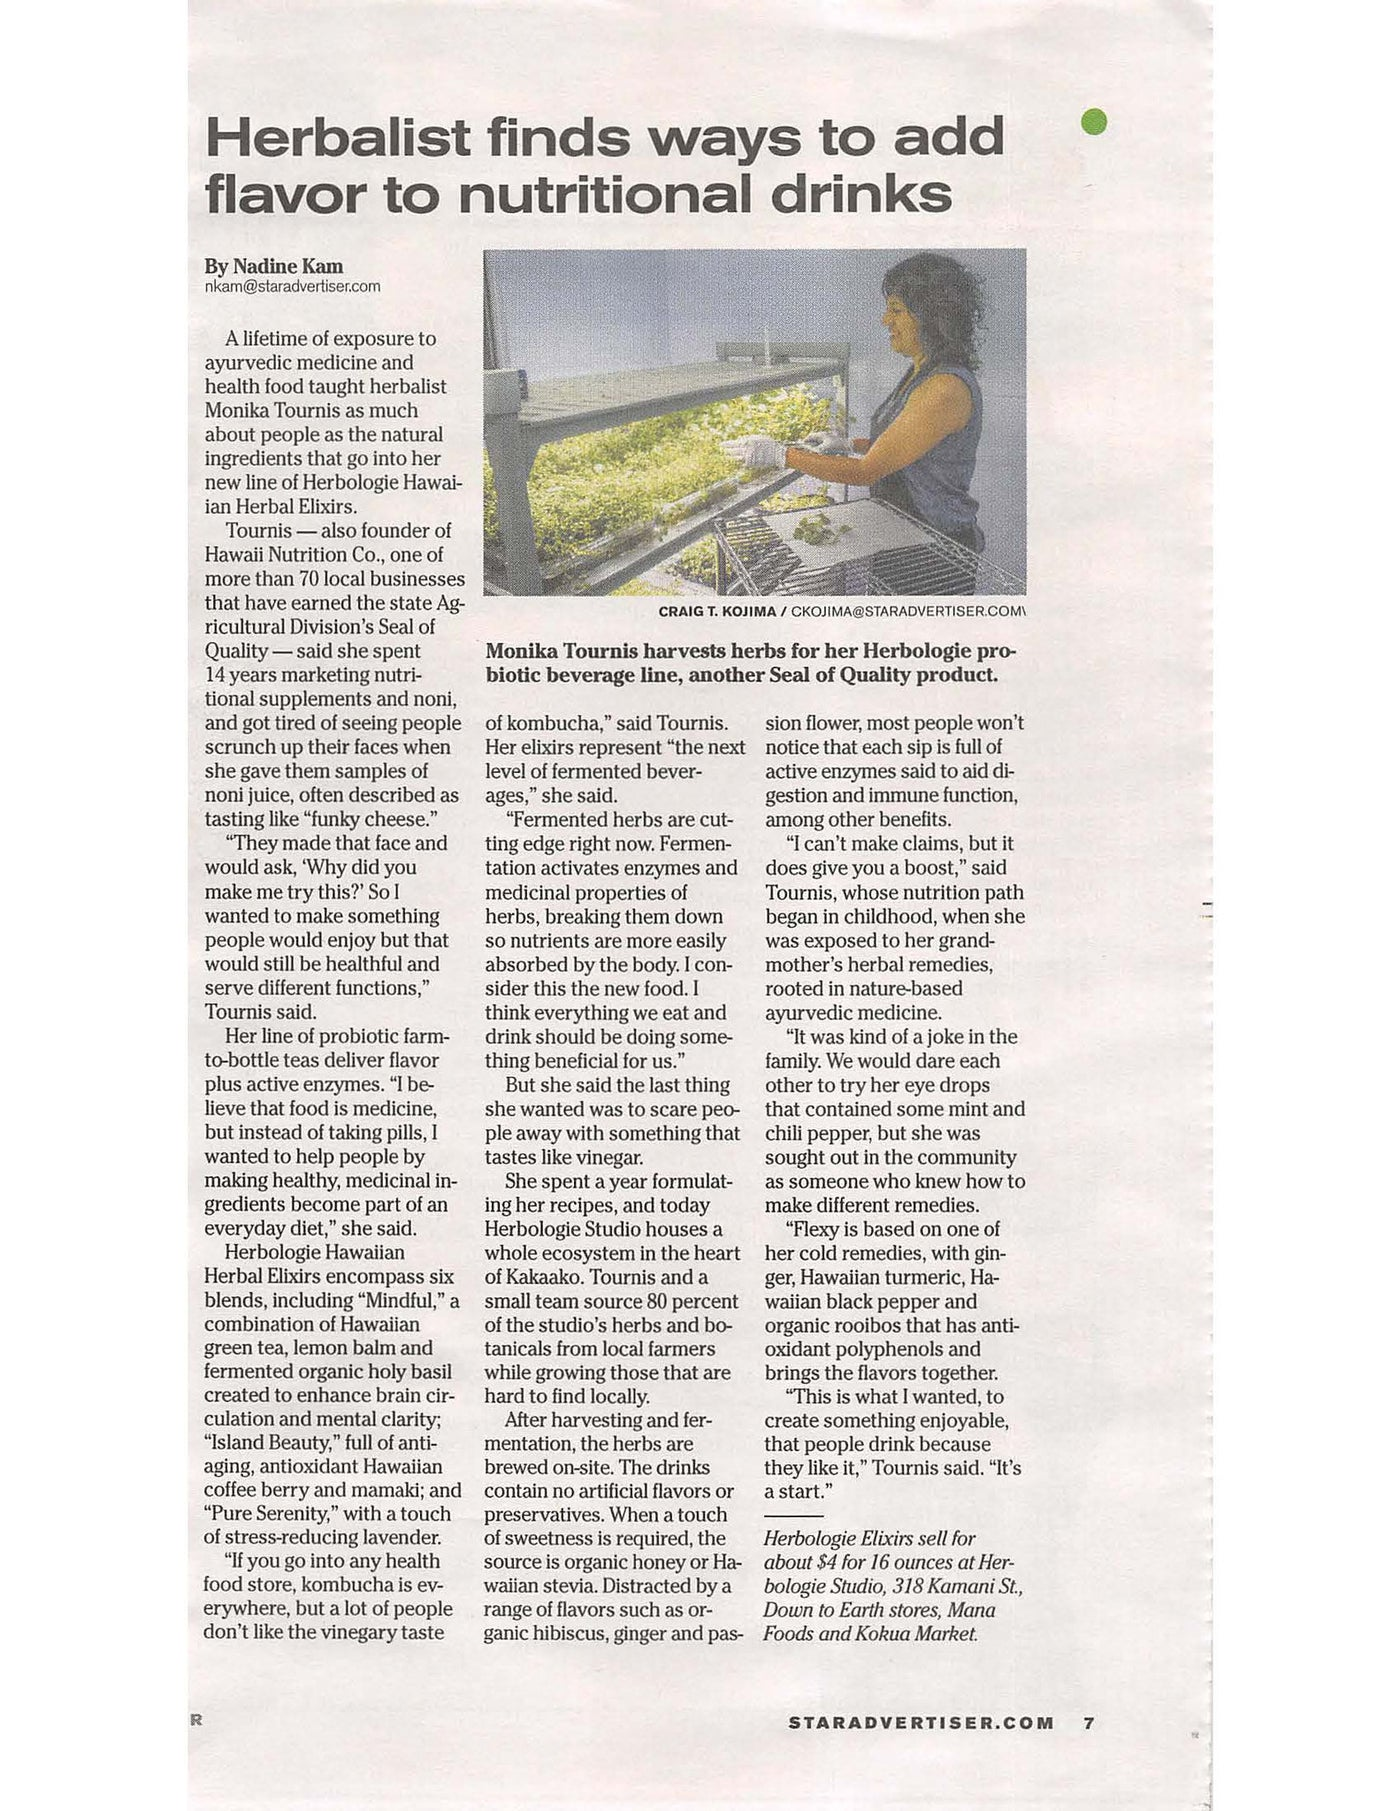 Kind words from Nadine Kam in The Honolulu Star Advertiser